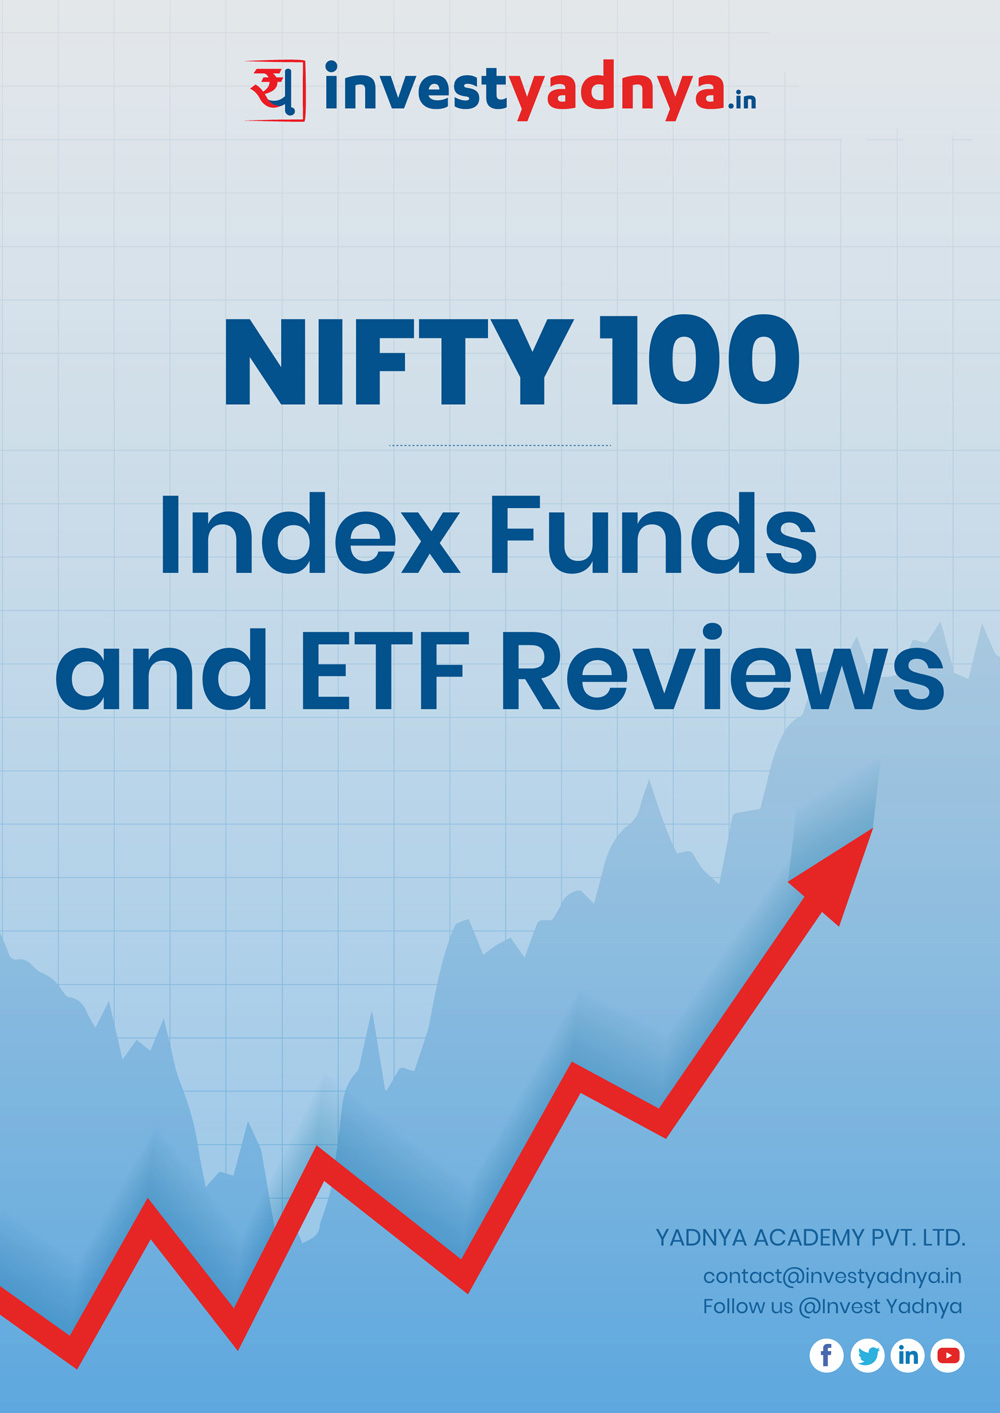 Index/ETF Category - Nifty 100 Detailed Analysis & Review based on Mar 31st, 2019 data. Most Comprehensive, unique and detailed ETF/Index reviews based on Yadnya's proprietary methodology of Green, Yellow & Red Star.